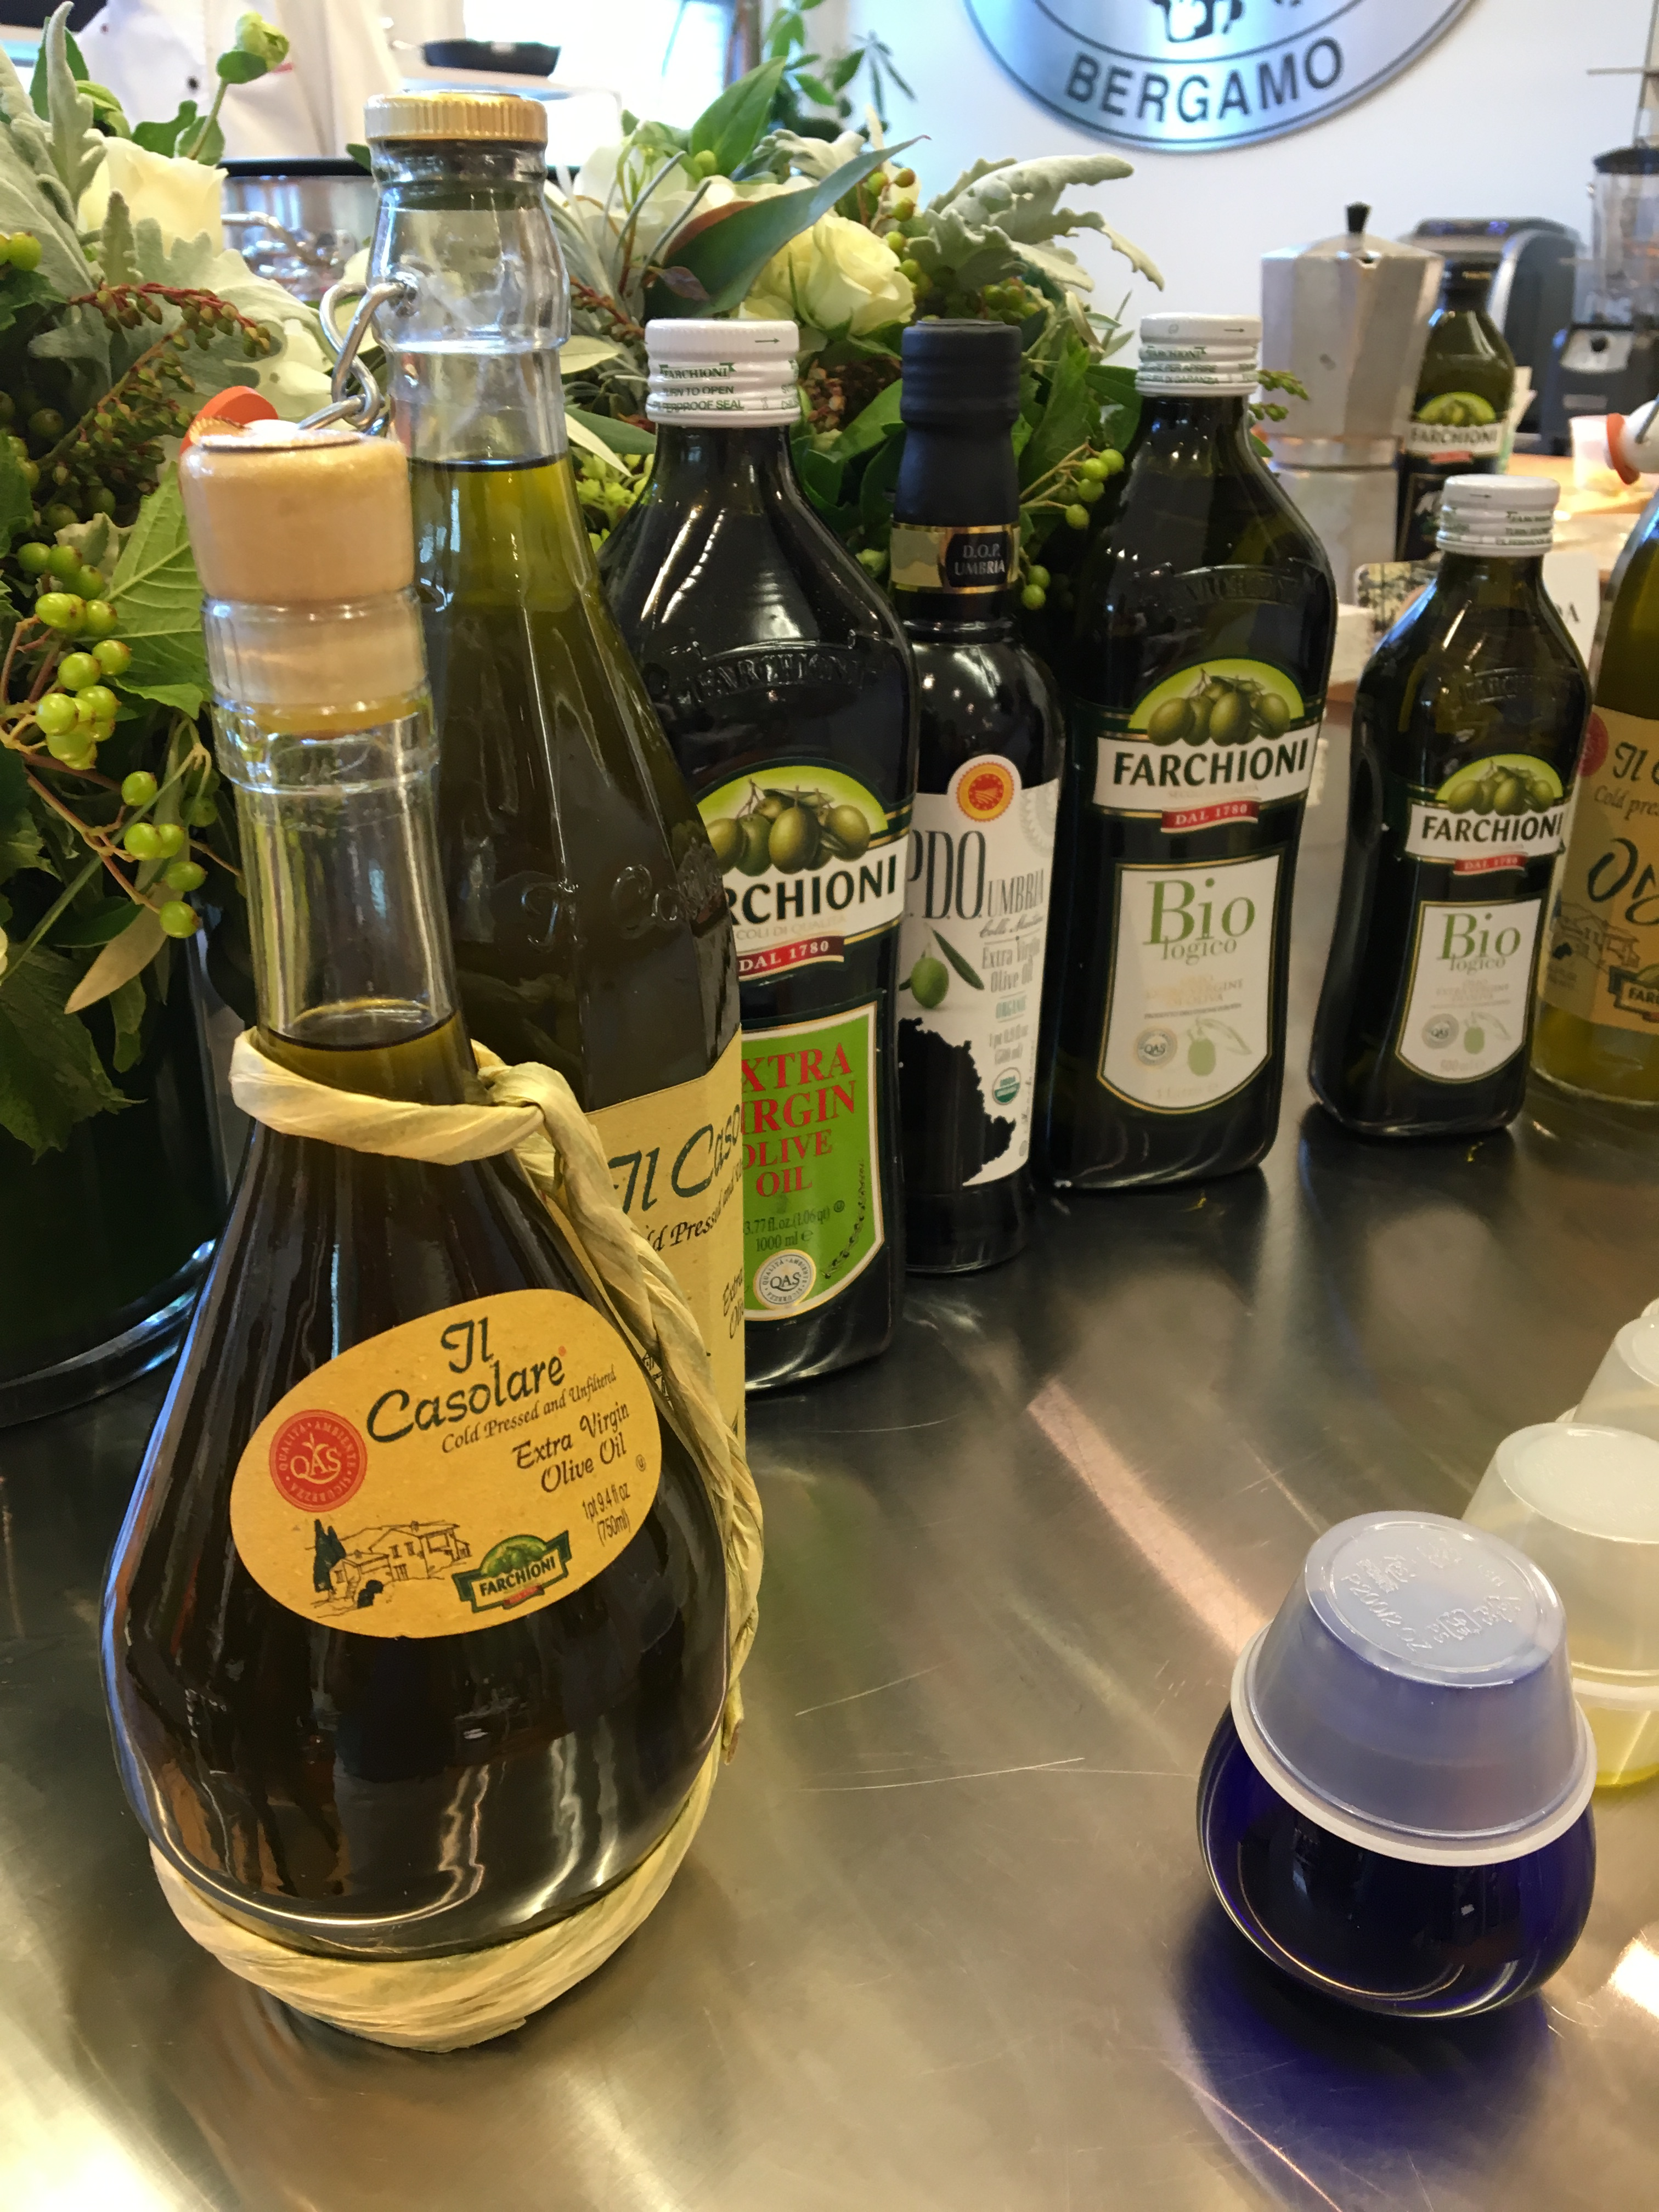 Event: Olio Farchioni – Olive Oil Tasting